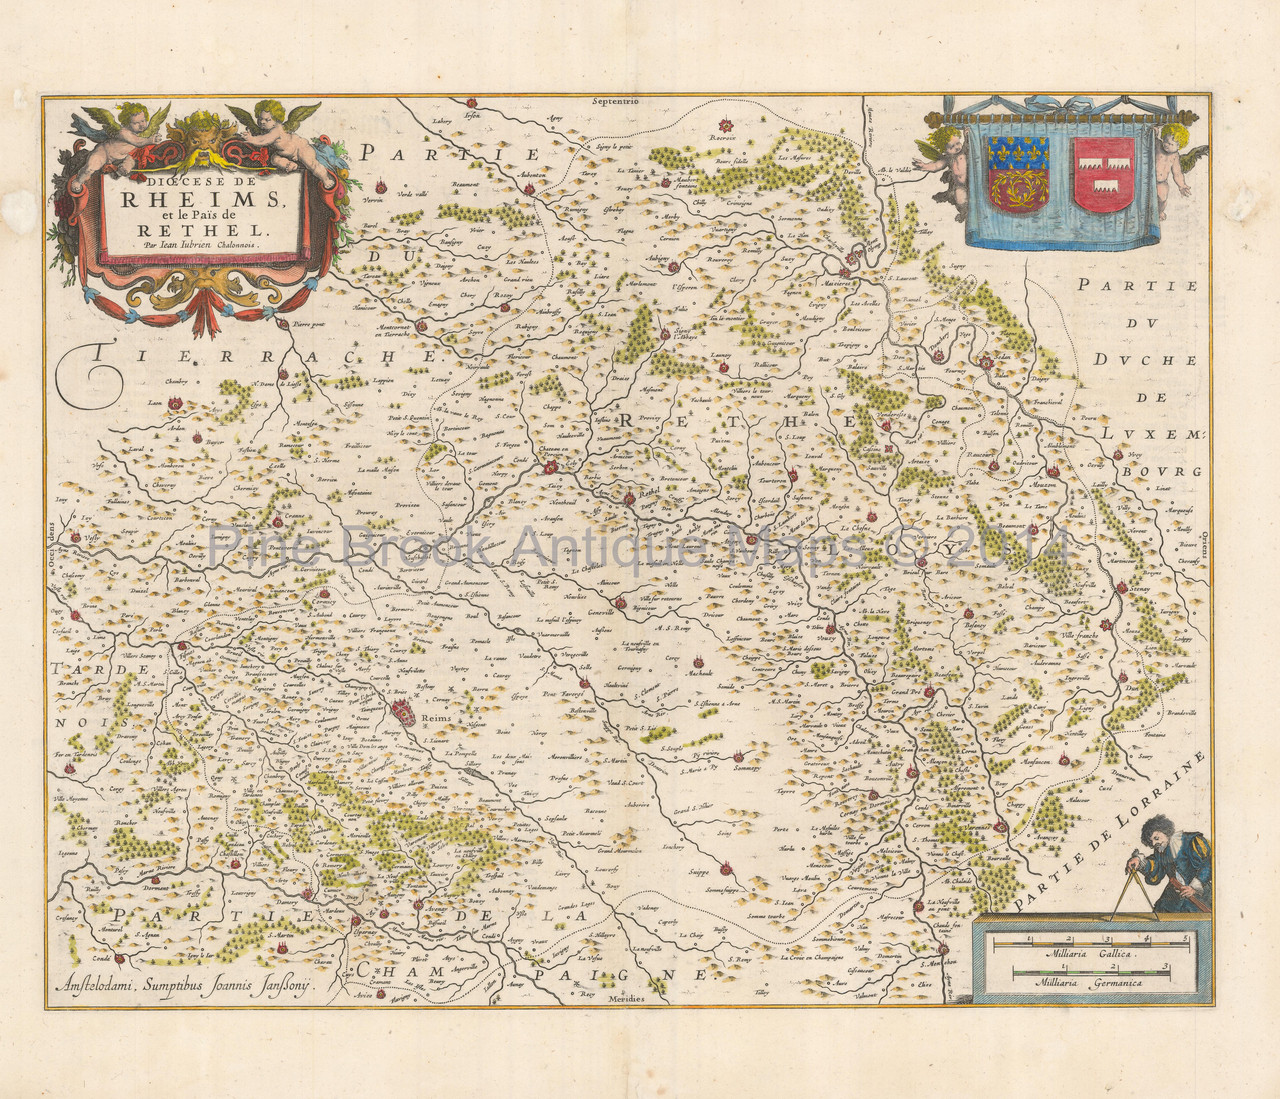 Reims France Antique Map Jansson 1640 - Pine Brook Antique Maps